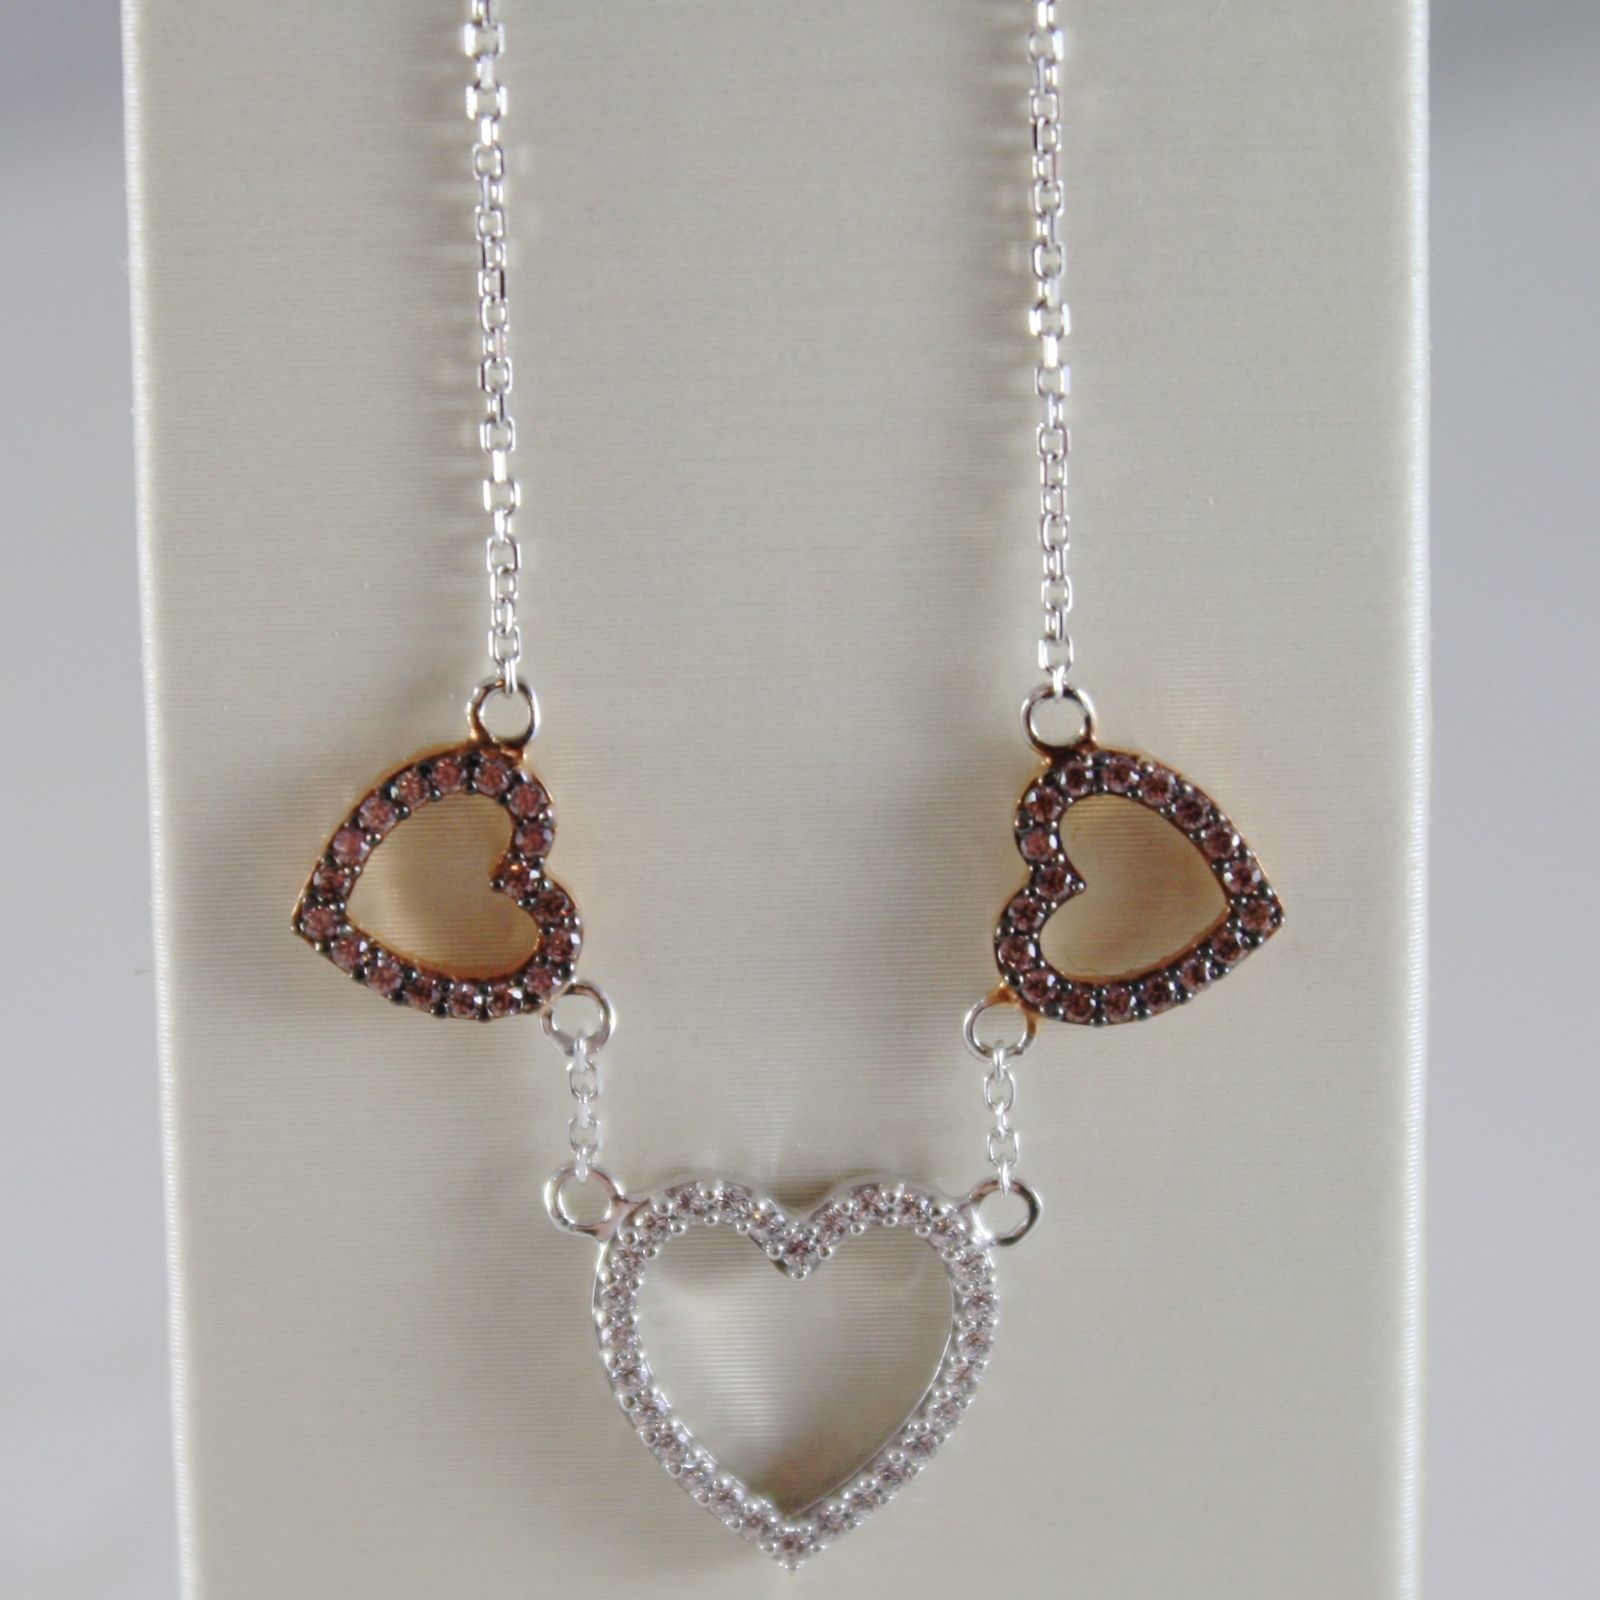 18K WHITE ROSE GOLD NECKLACE 3 HEARTS HEART BROWN WHITE ZIRCONIA MADE IN ITALY